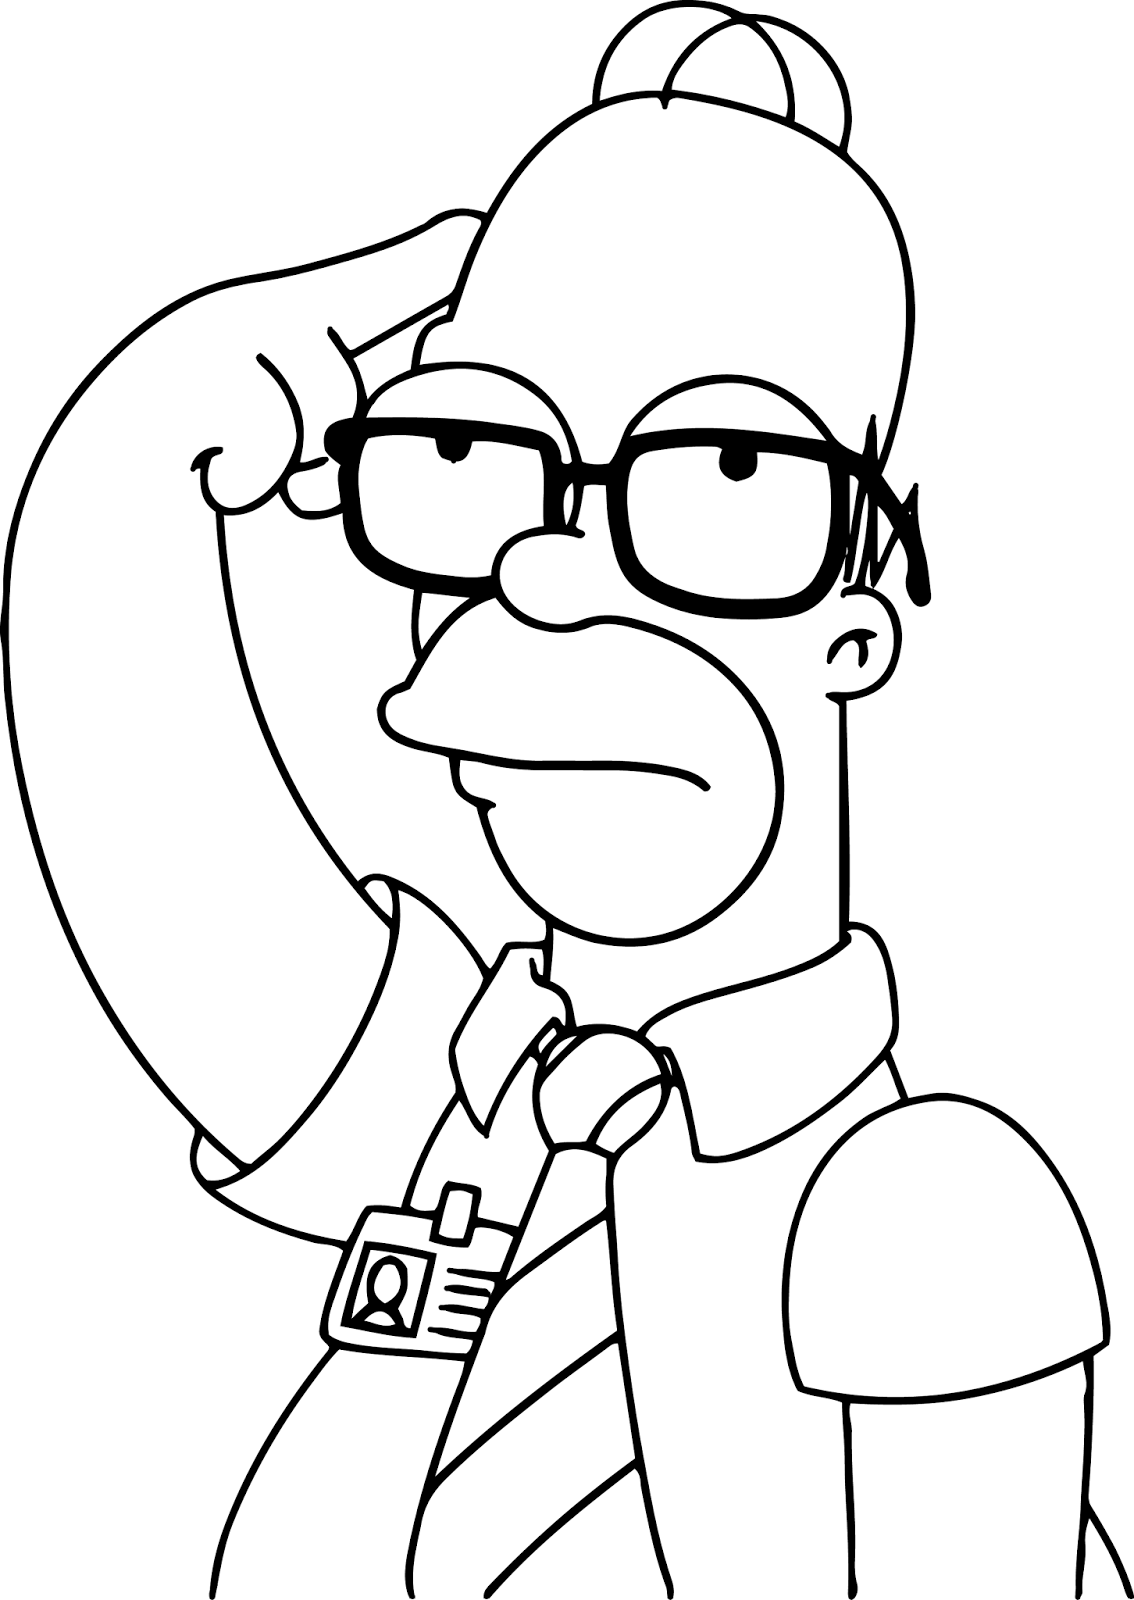 Free coloring pages of homero simpson